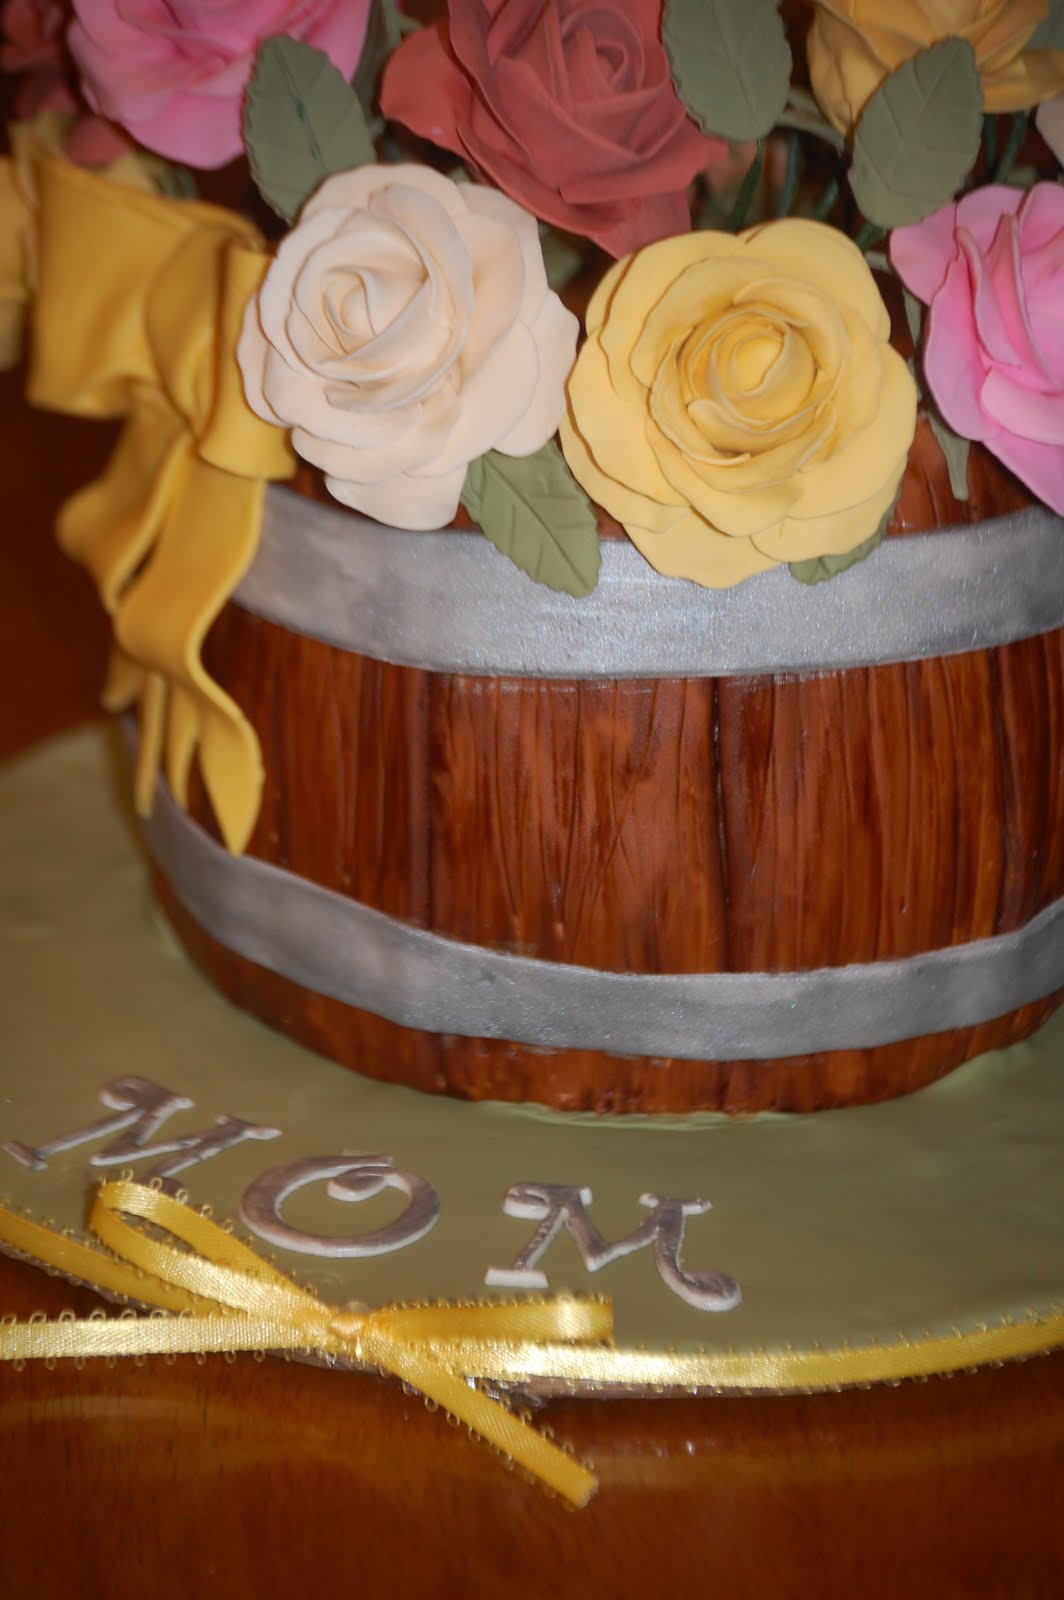 Cake Design For Mother In Law : A Piece of Cake!: My Mother-In-Law s 60th Birthday Cake